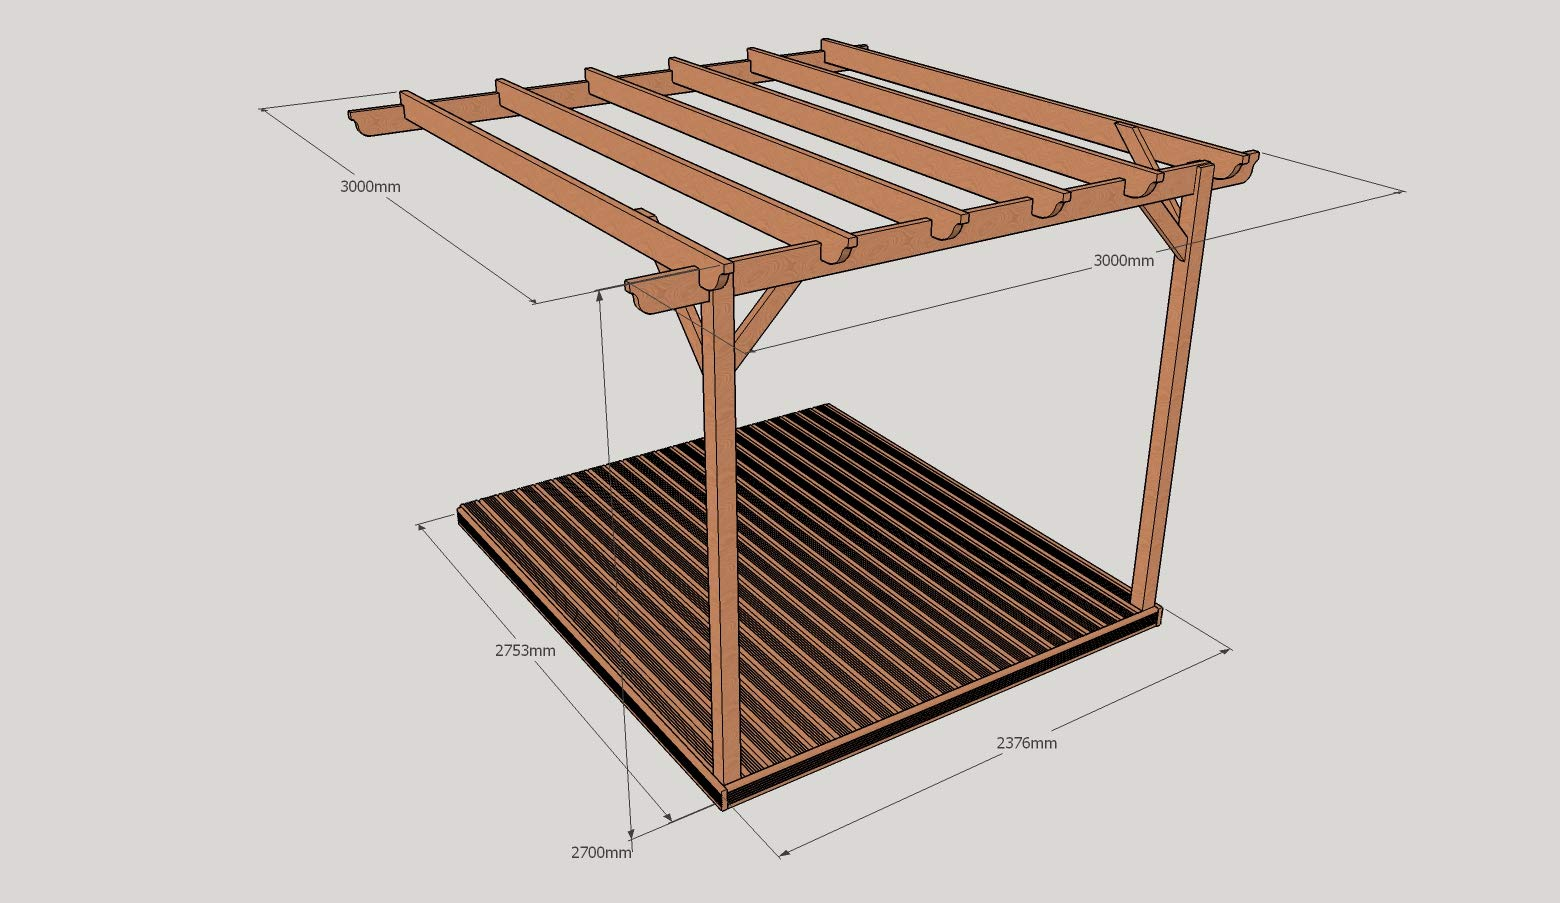 Rutland County Garden Furniture Montado en la Pared Kit de Pergola ...